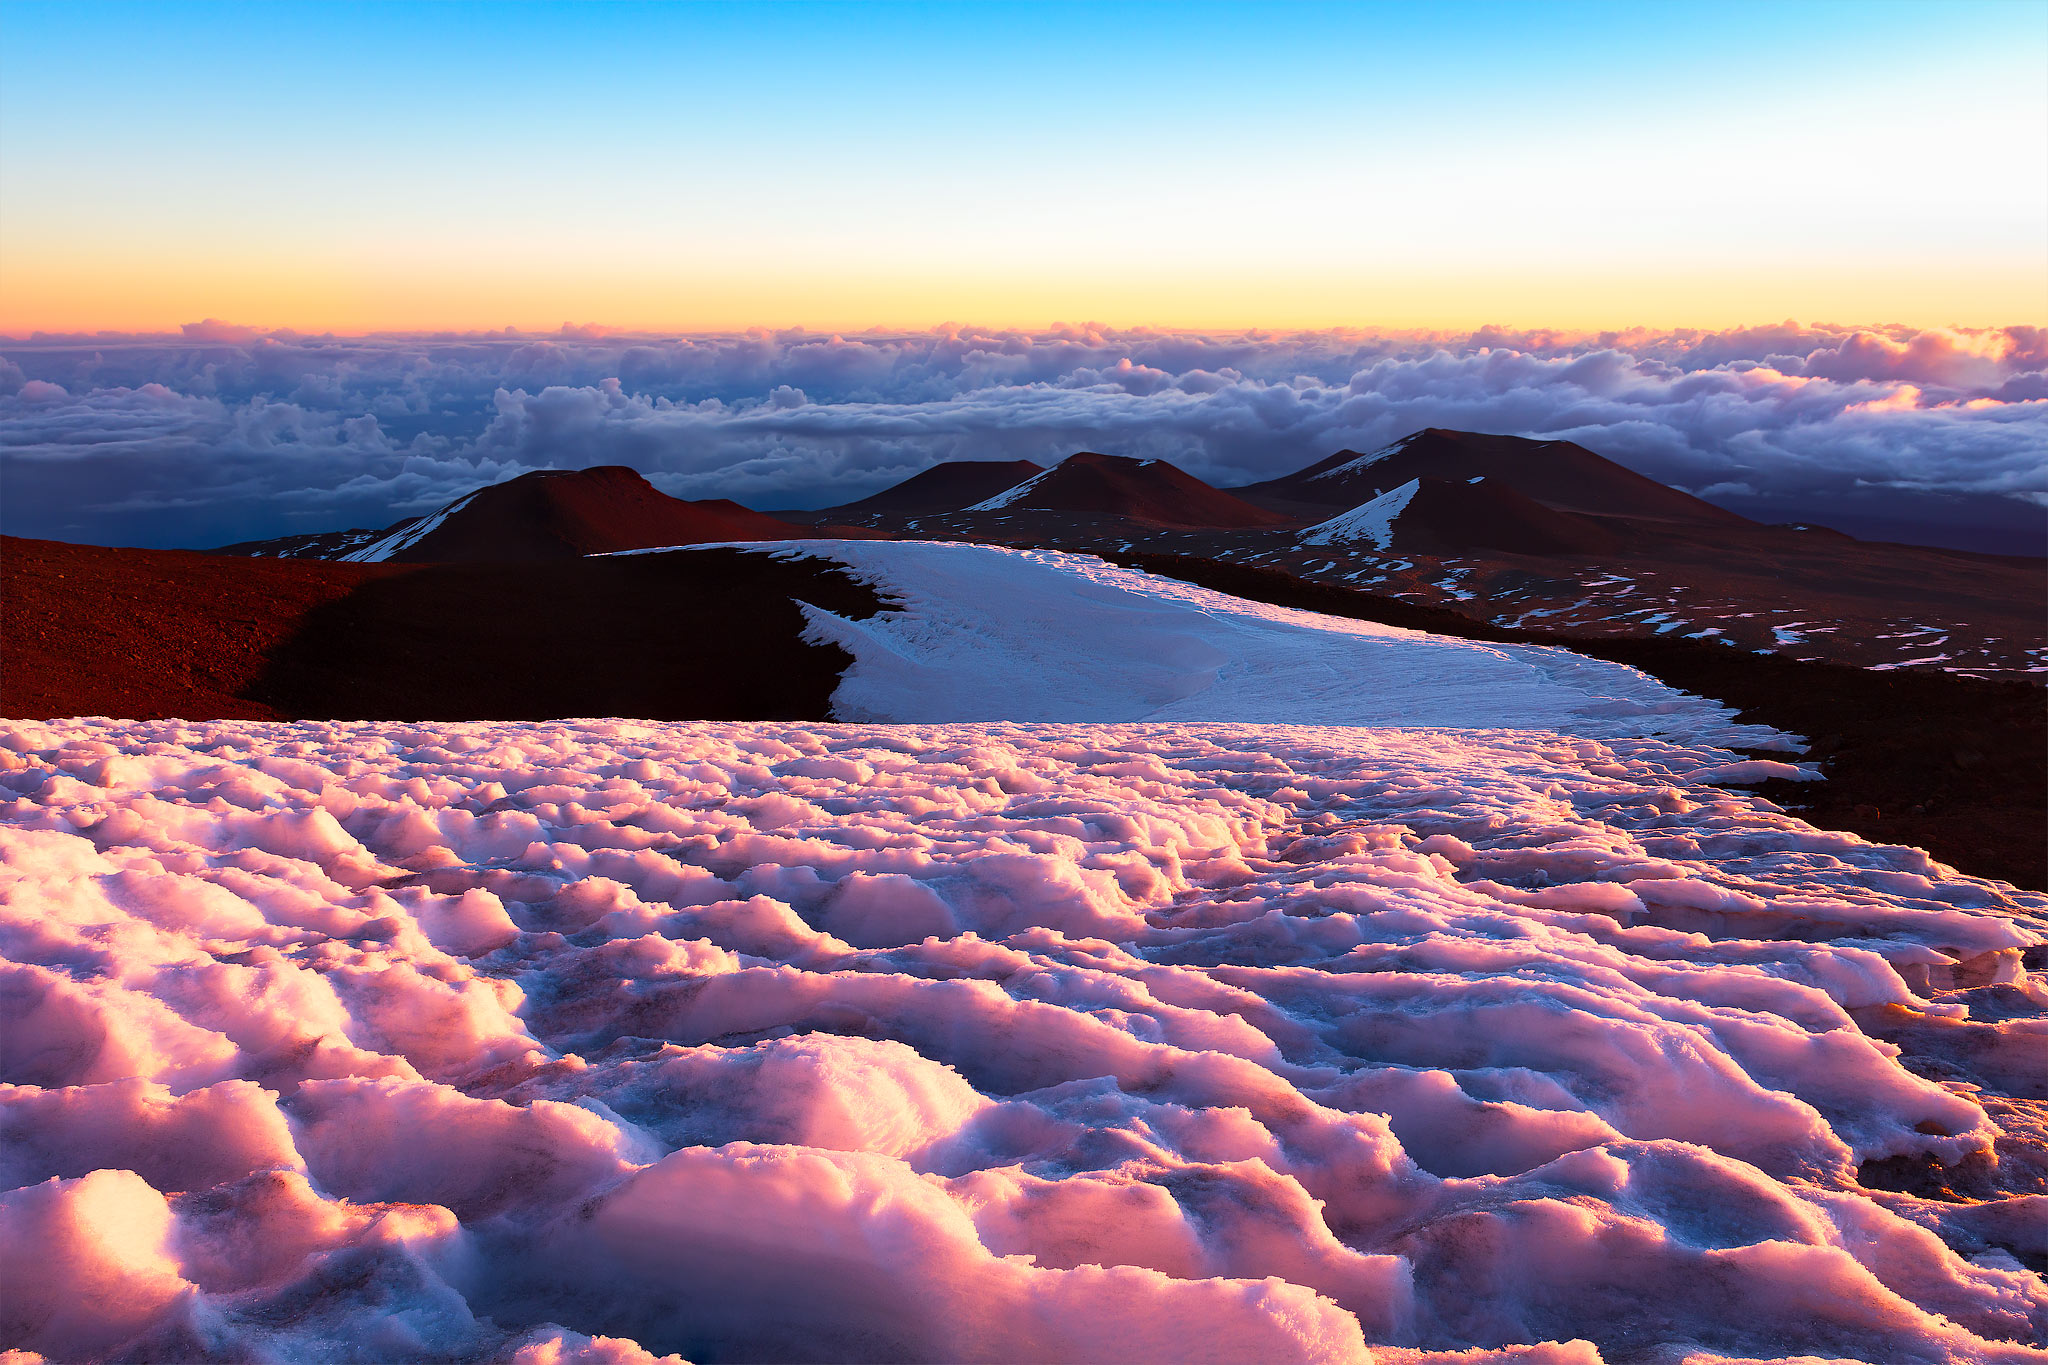 In this photo a blanket of snow and ice is saturated in the morning light during sunrise. The pink color was incredible and short...